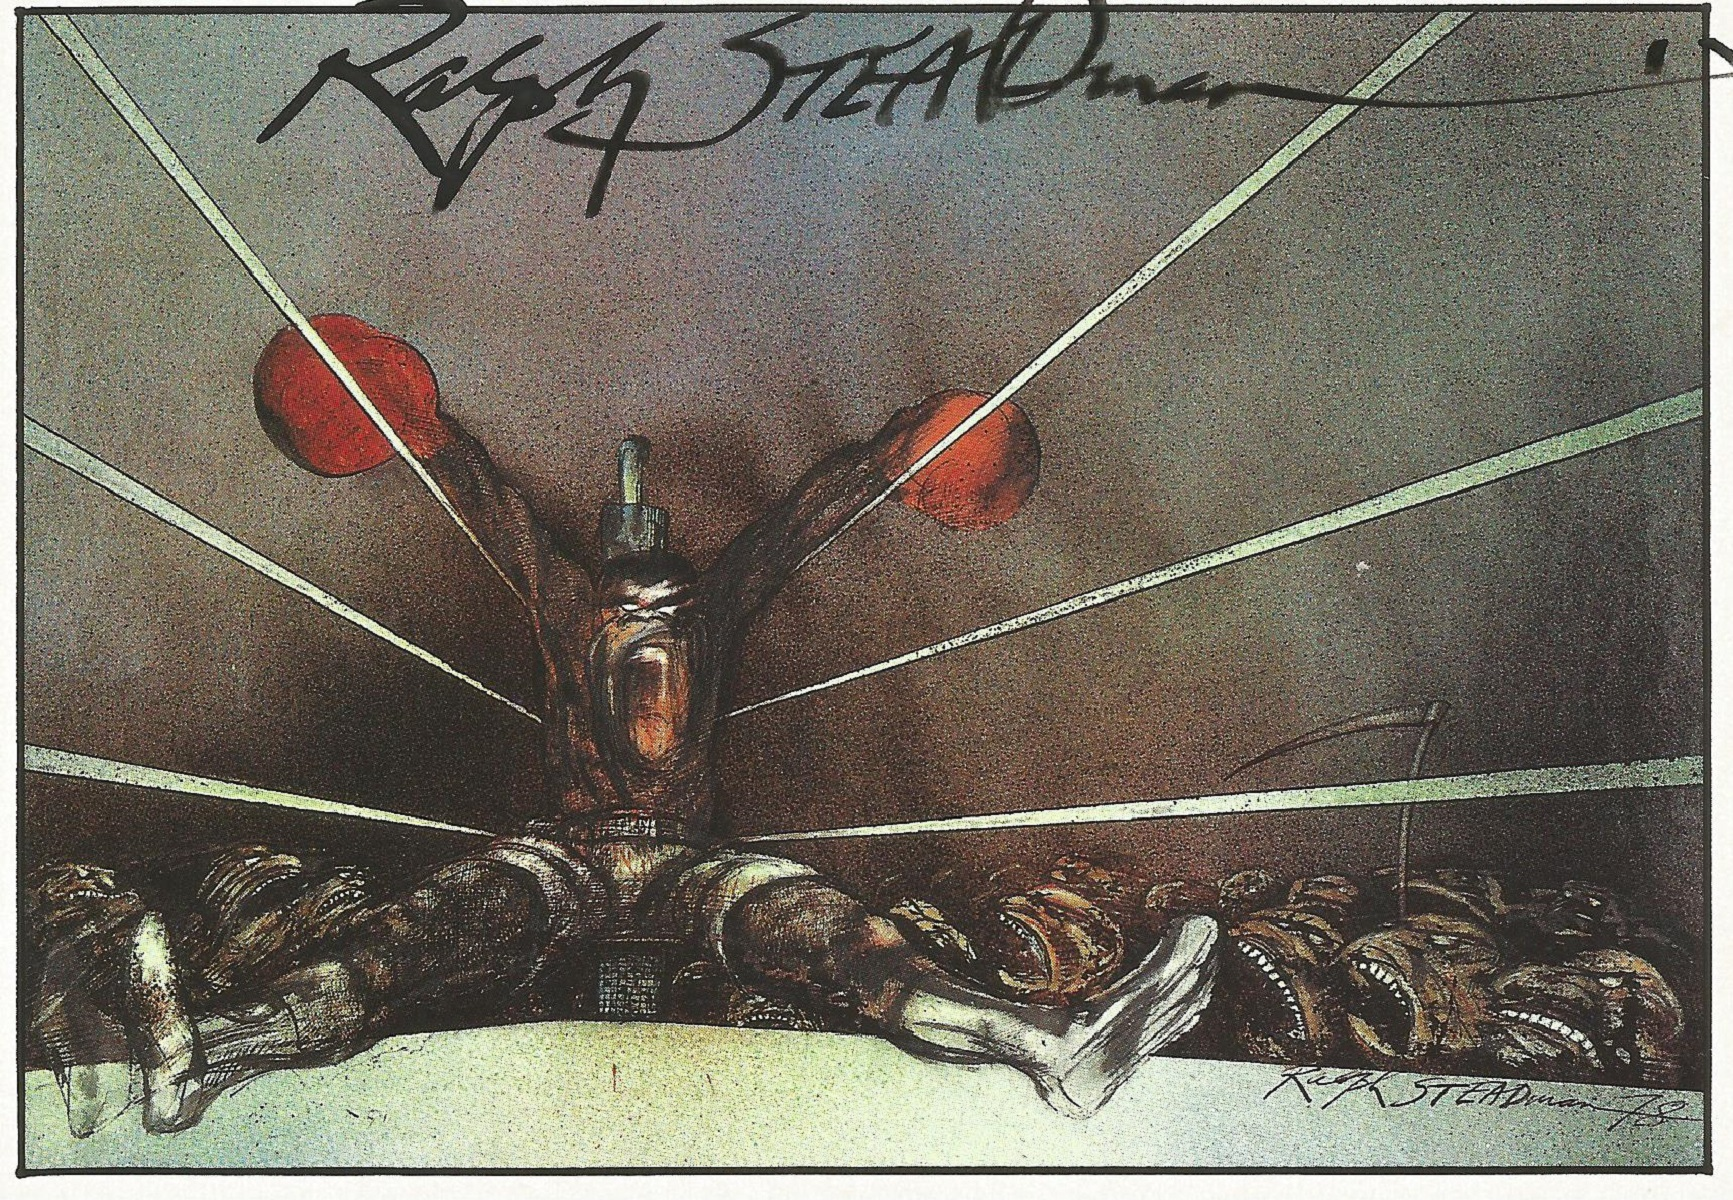 Ralph Steadman signed postcard. Steadman is renowned for his political and social caricatures,